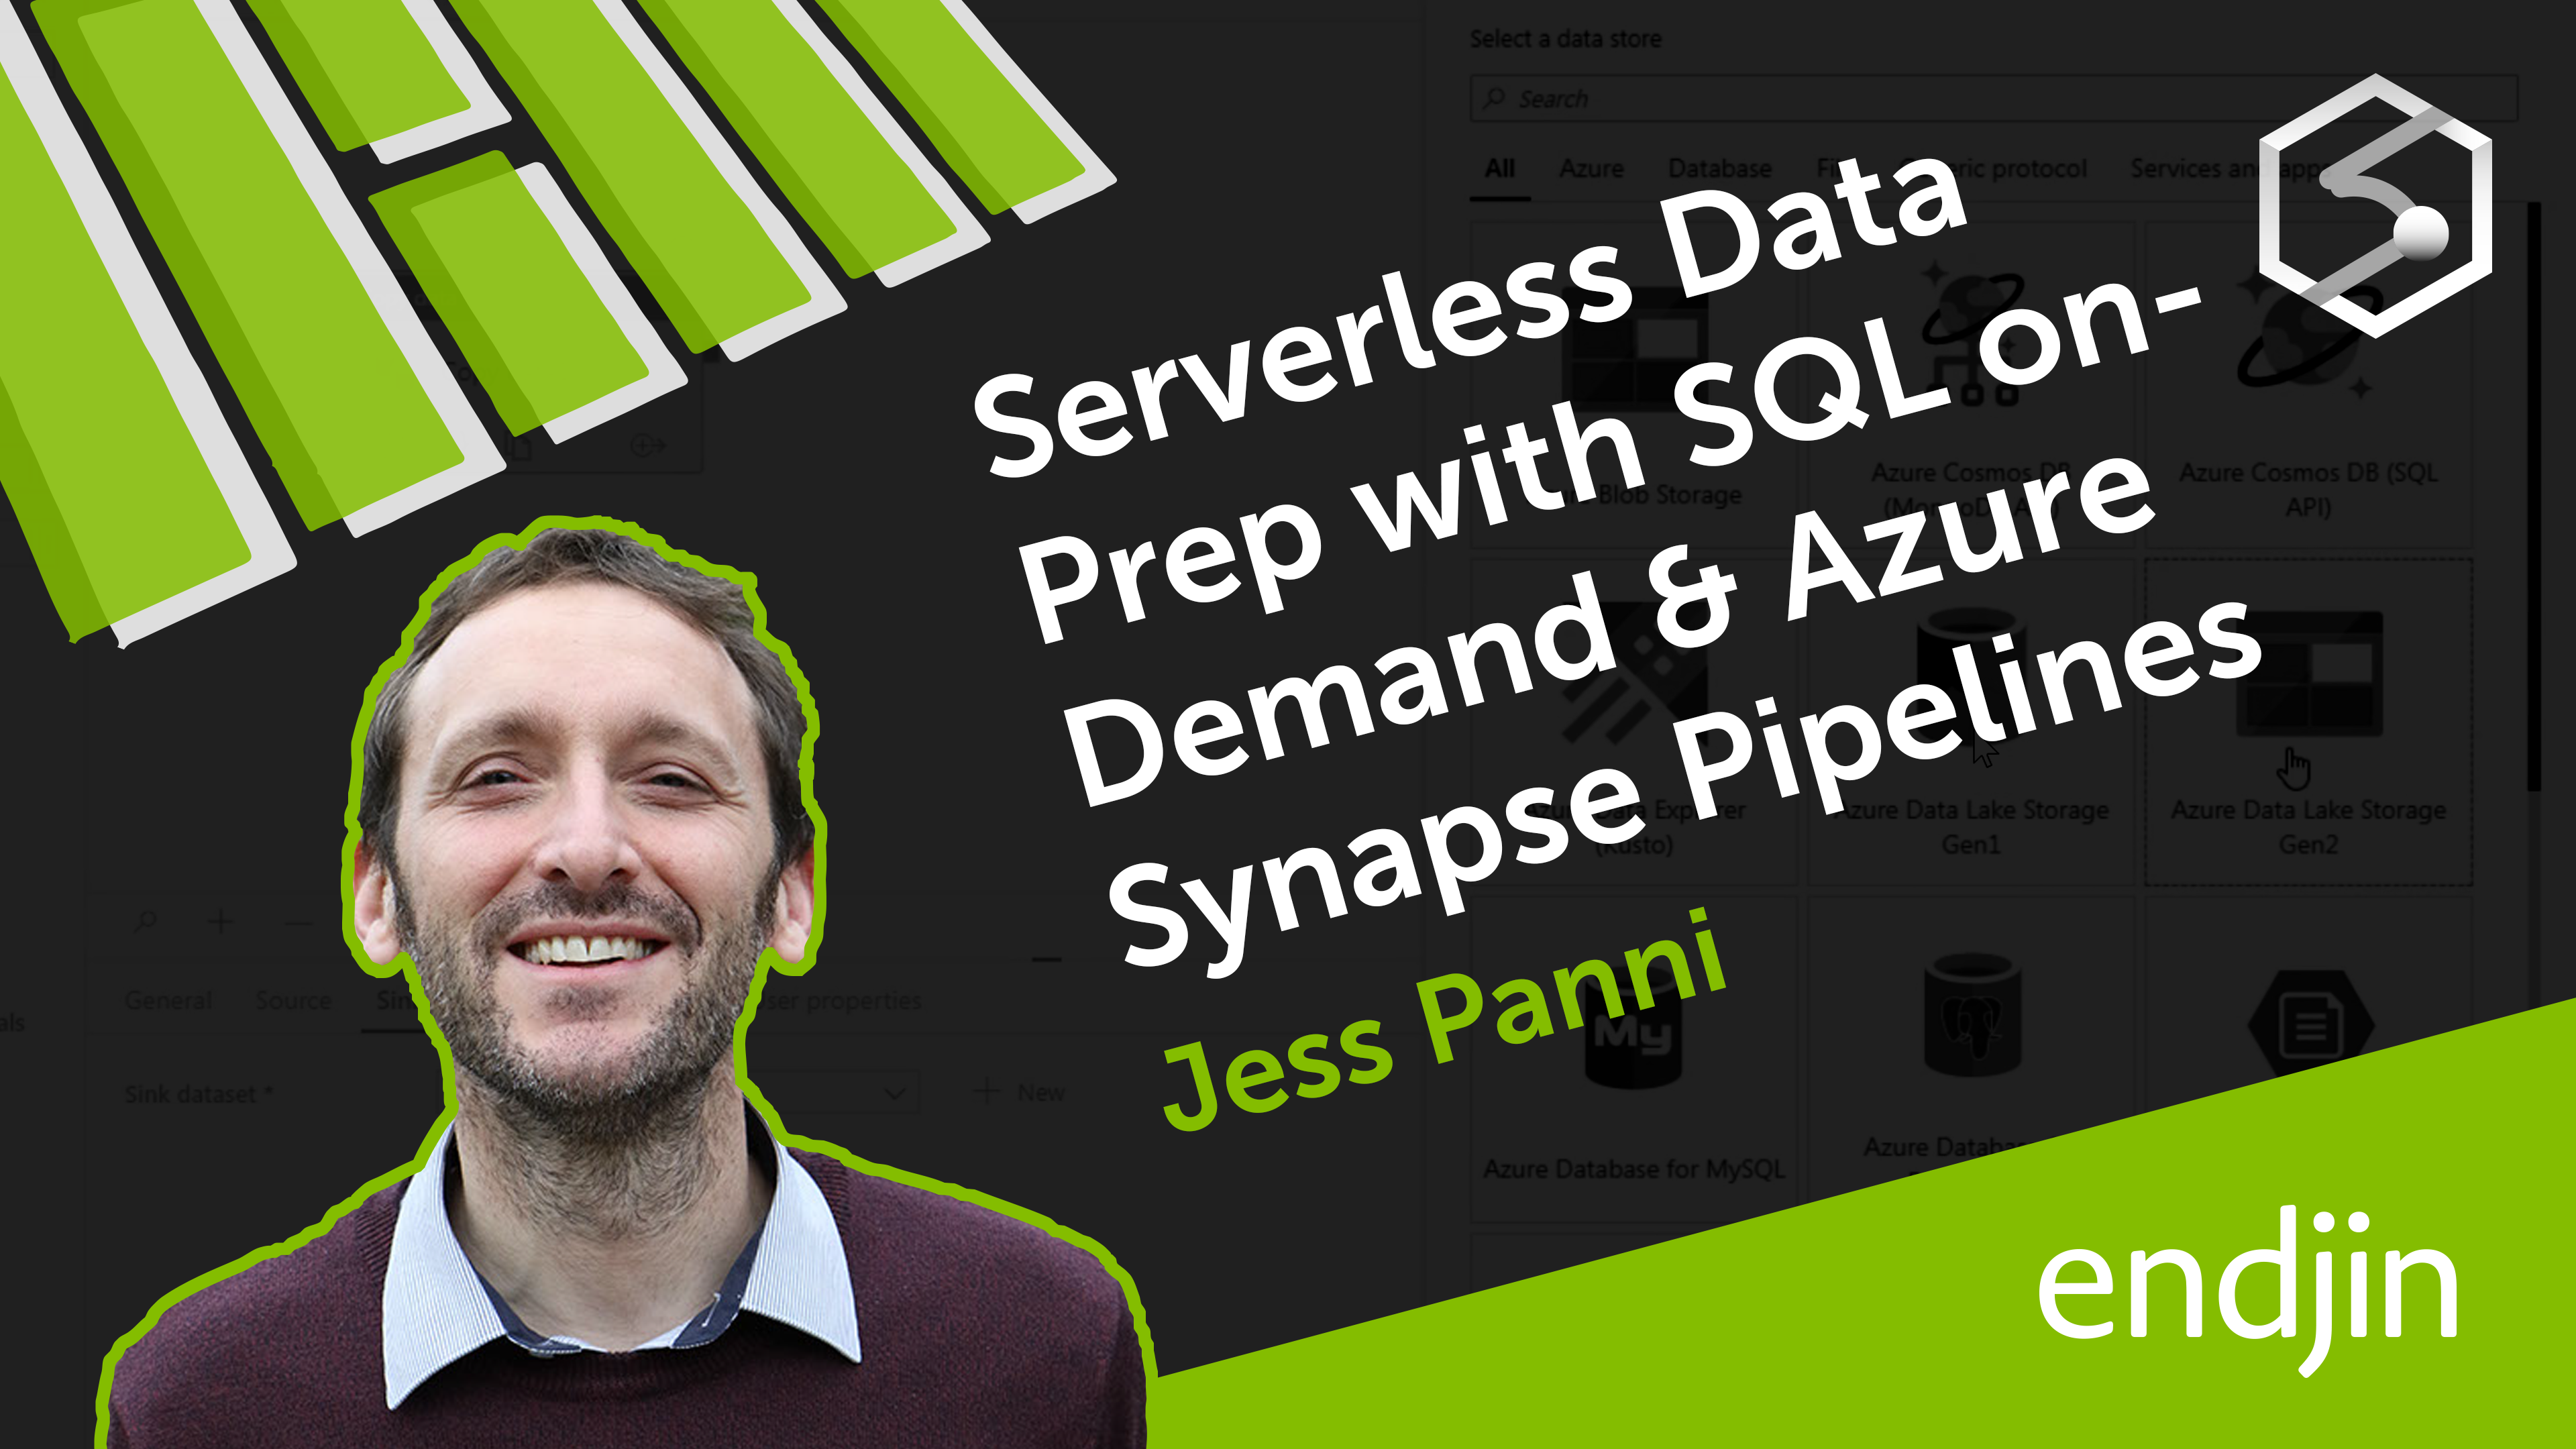 Serverless data prep using SQL on demand and Synapse Pipelines